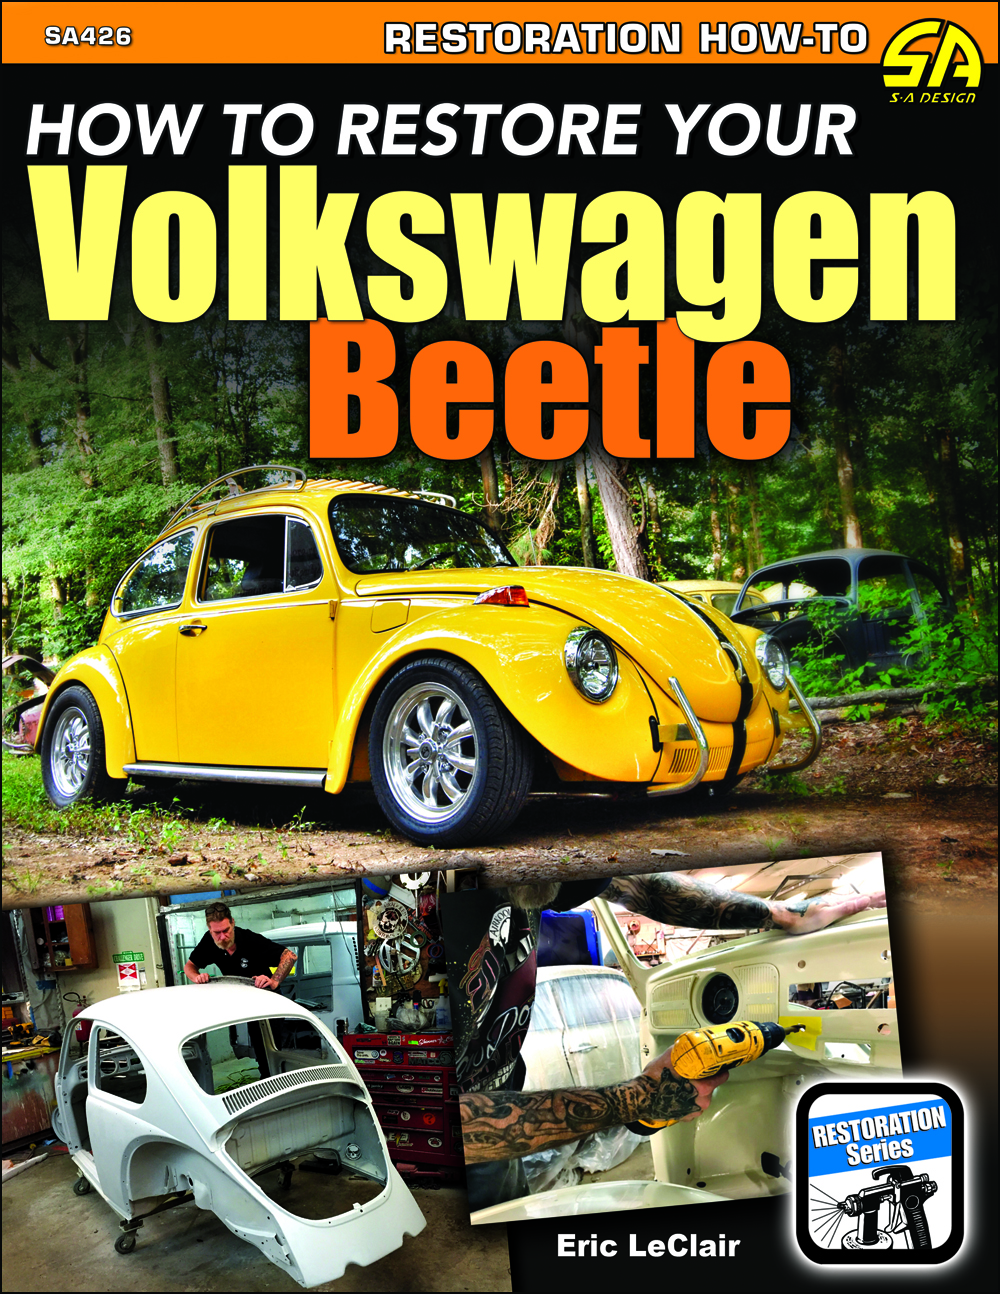 1962 1965 Volkswagen Beetle Wiring Diagram Pictures To Pin On